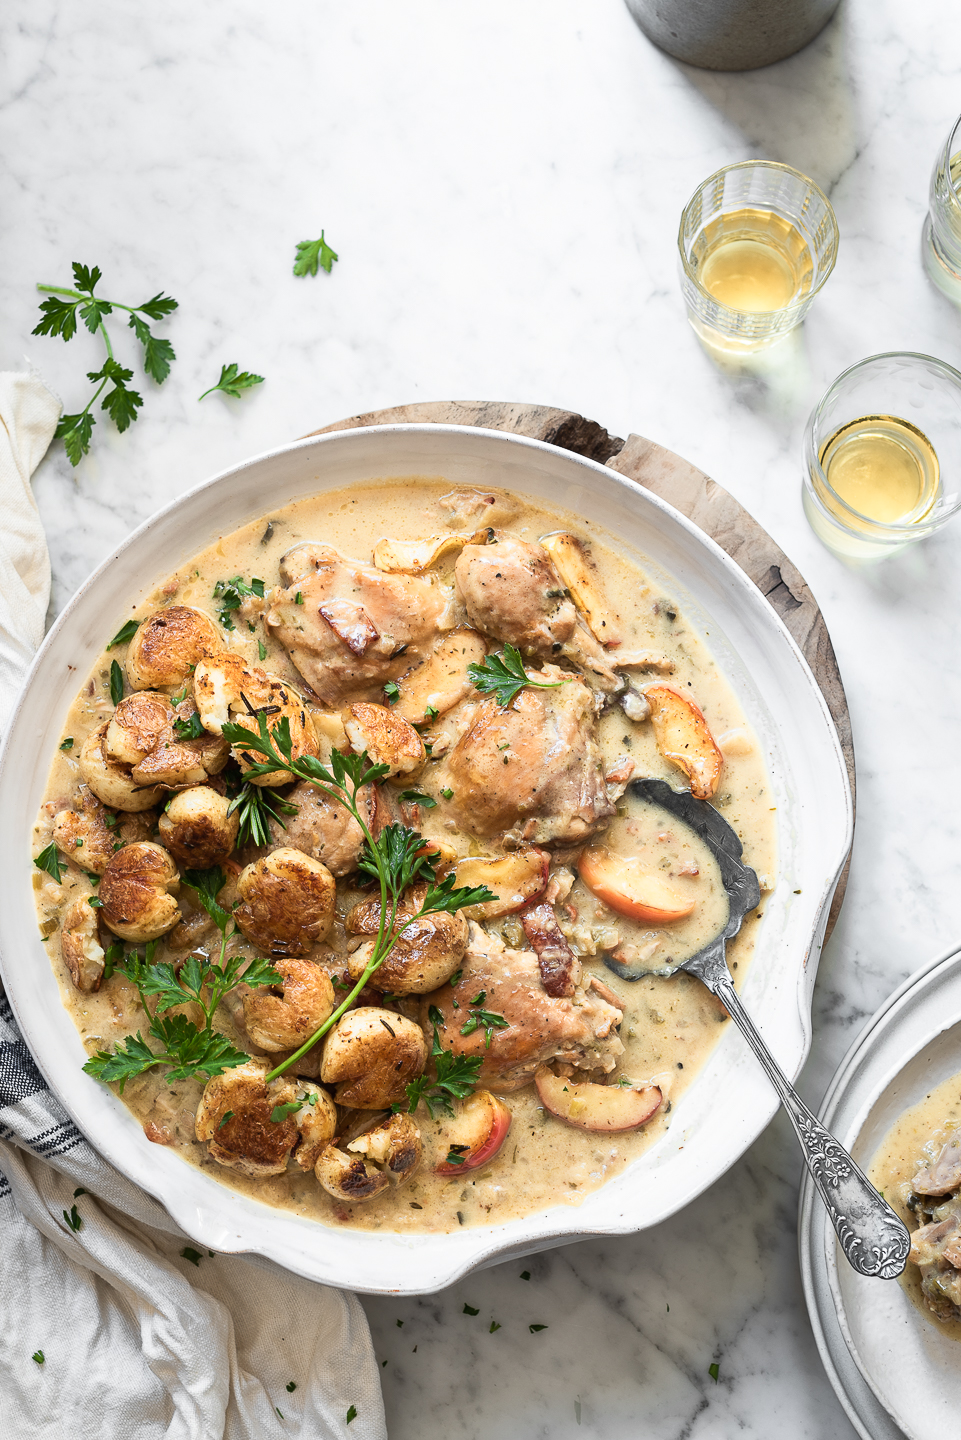 Normandy Chicken with Caramelised Apples